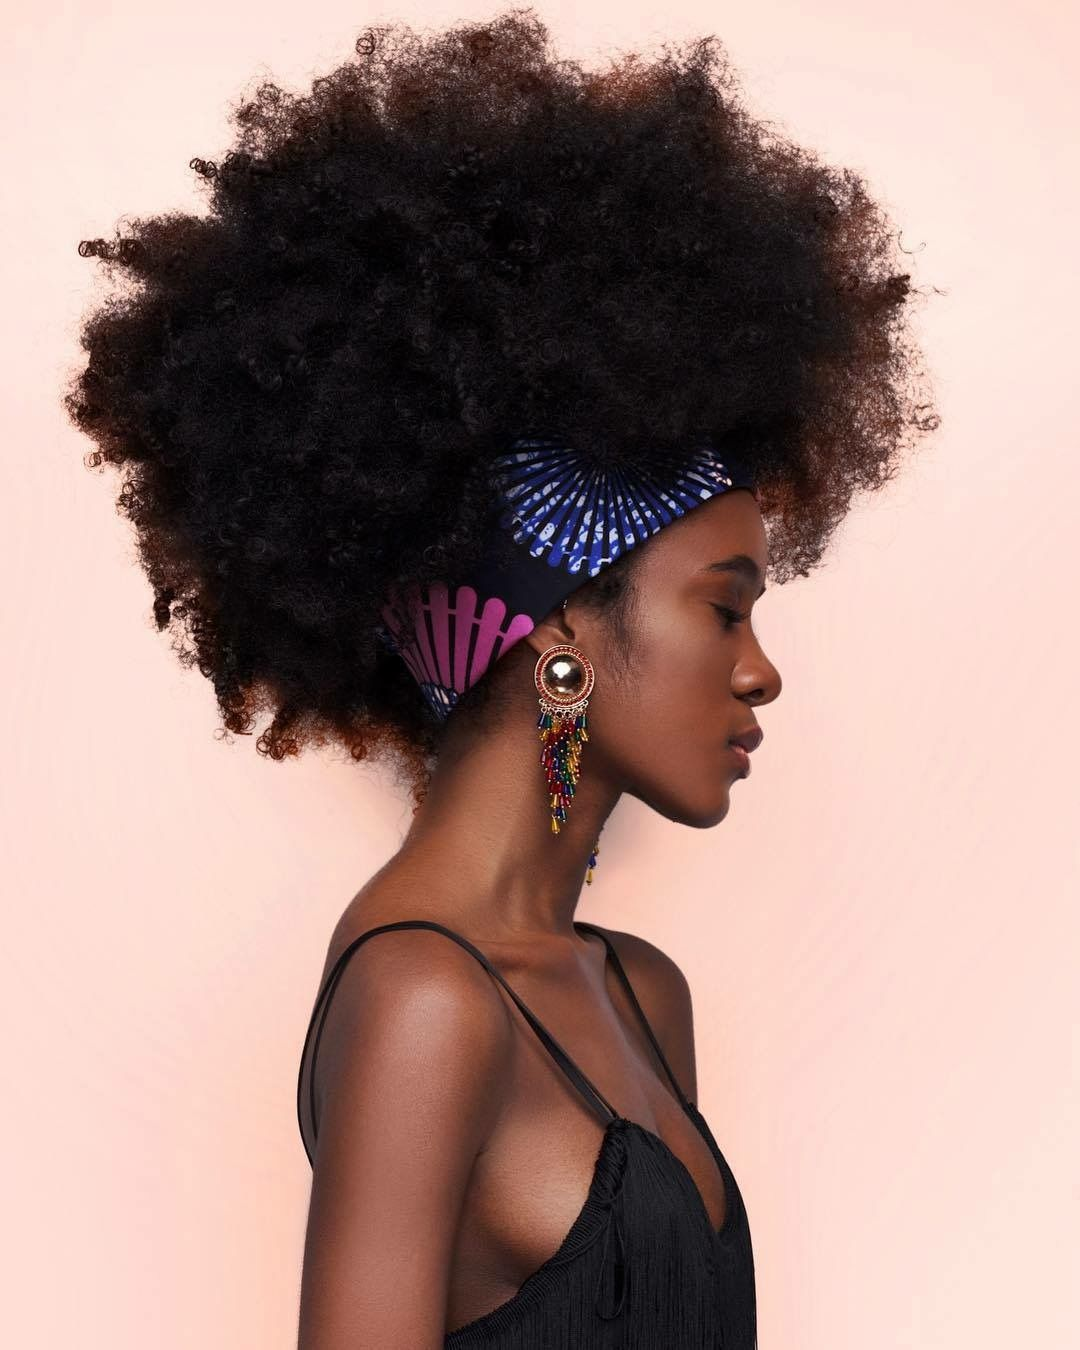 Thebeautyofnaturalhairboard Natural Hair Styles Afro Hairstyles Cool Hairstyles